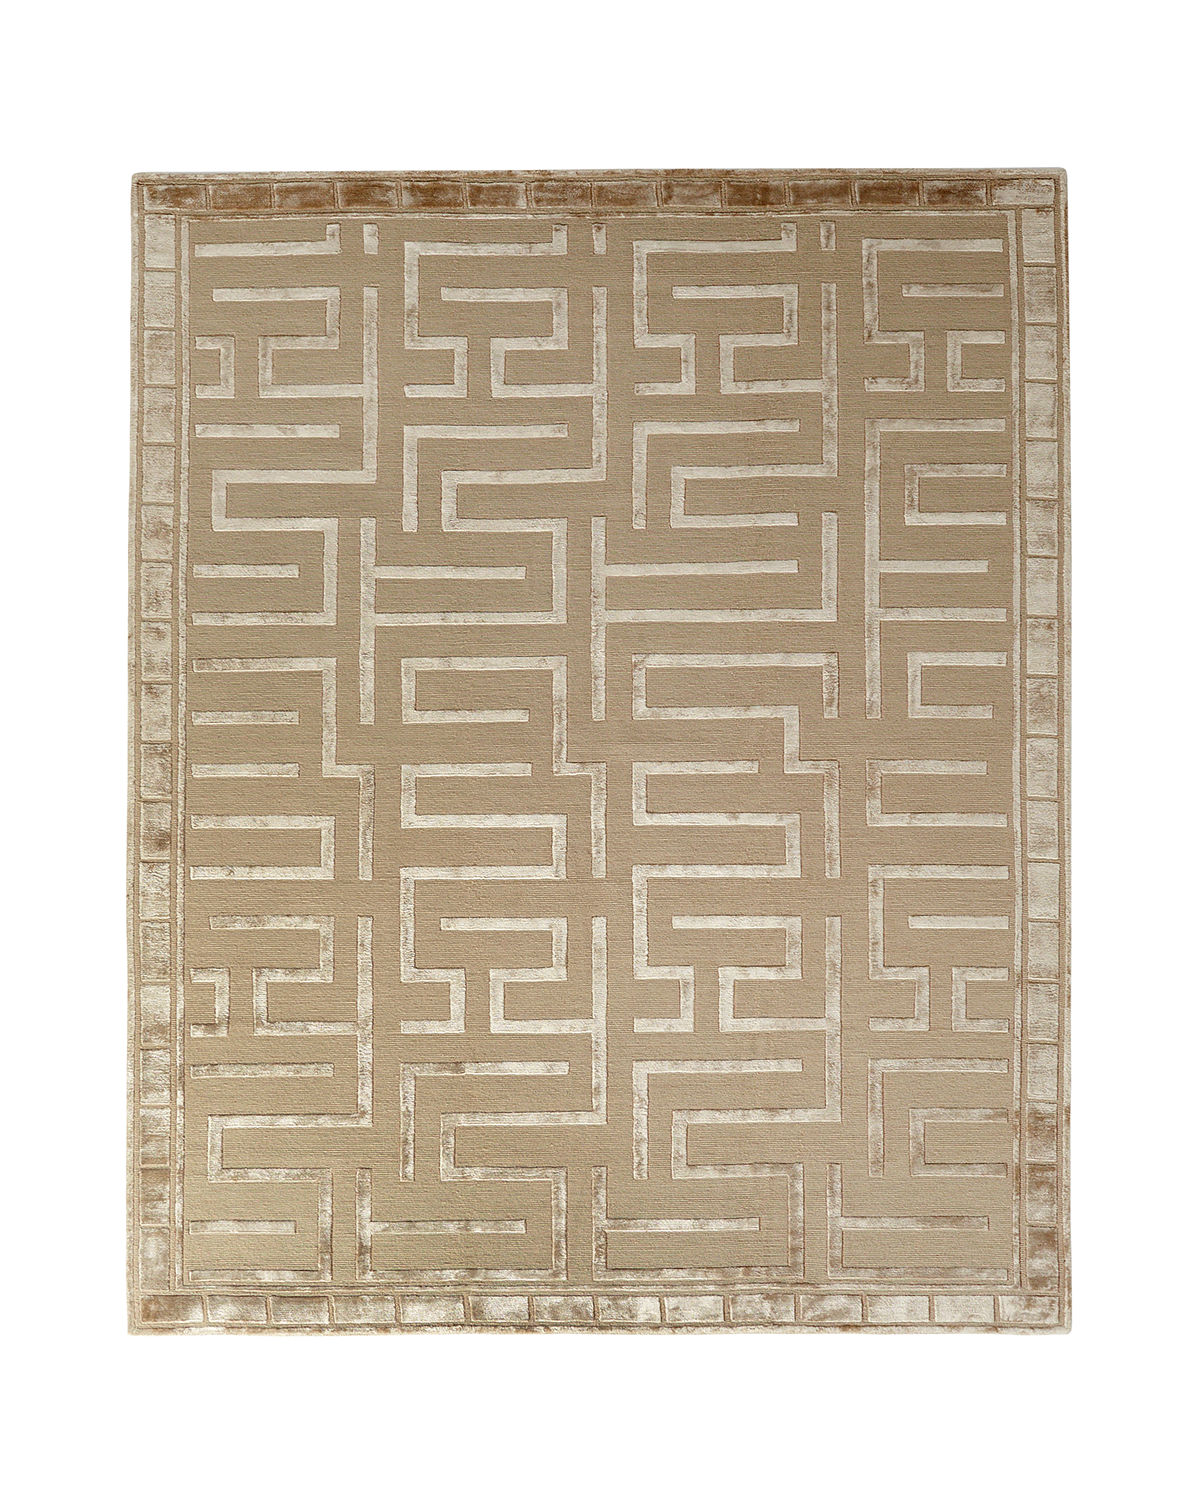 Exquisite Rugs Rowling Maze Hand-Knotted Rug, 6' x 9'